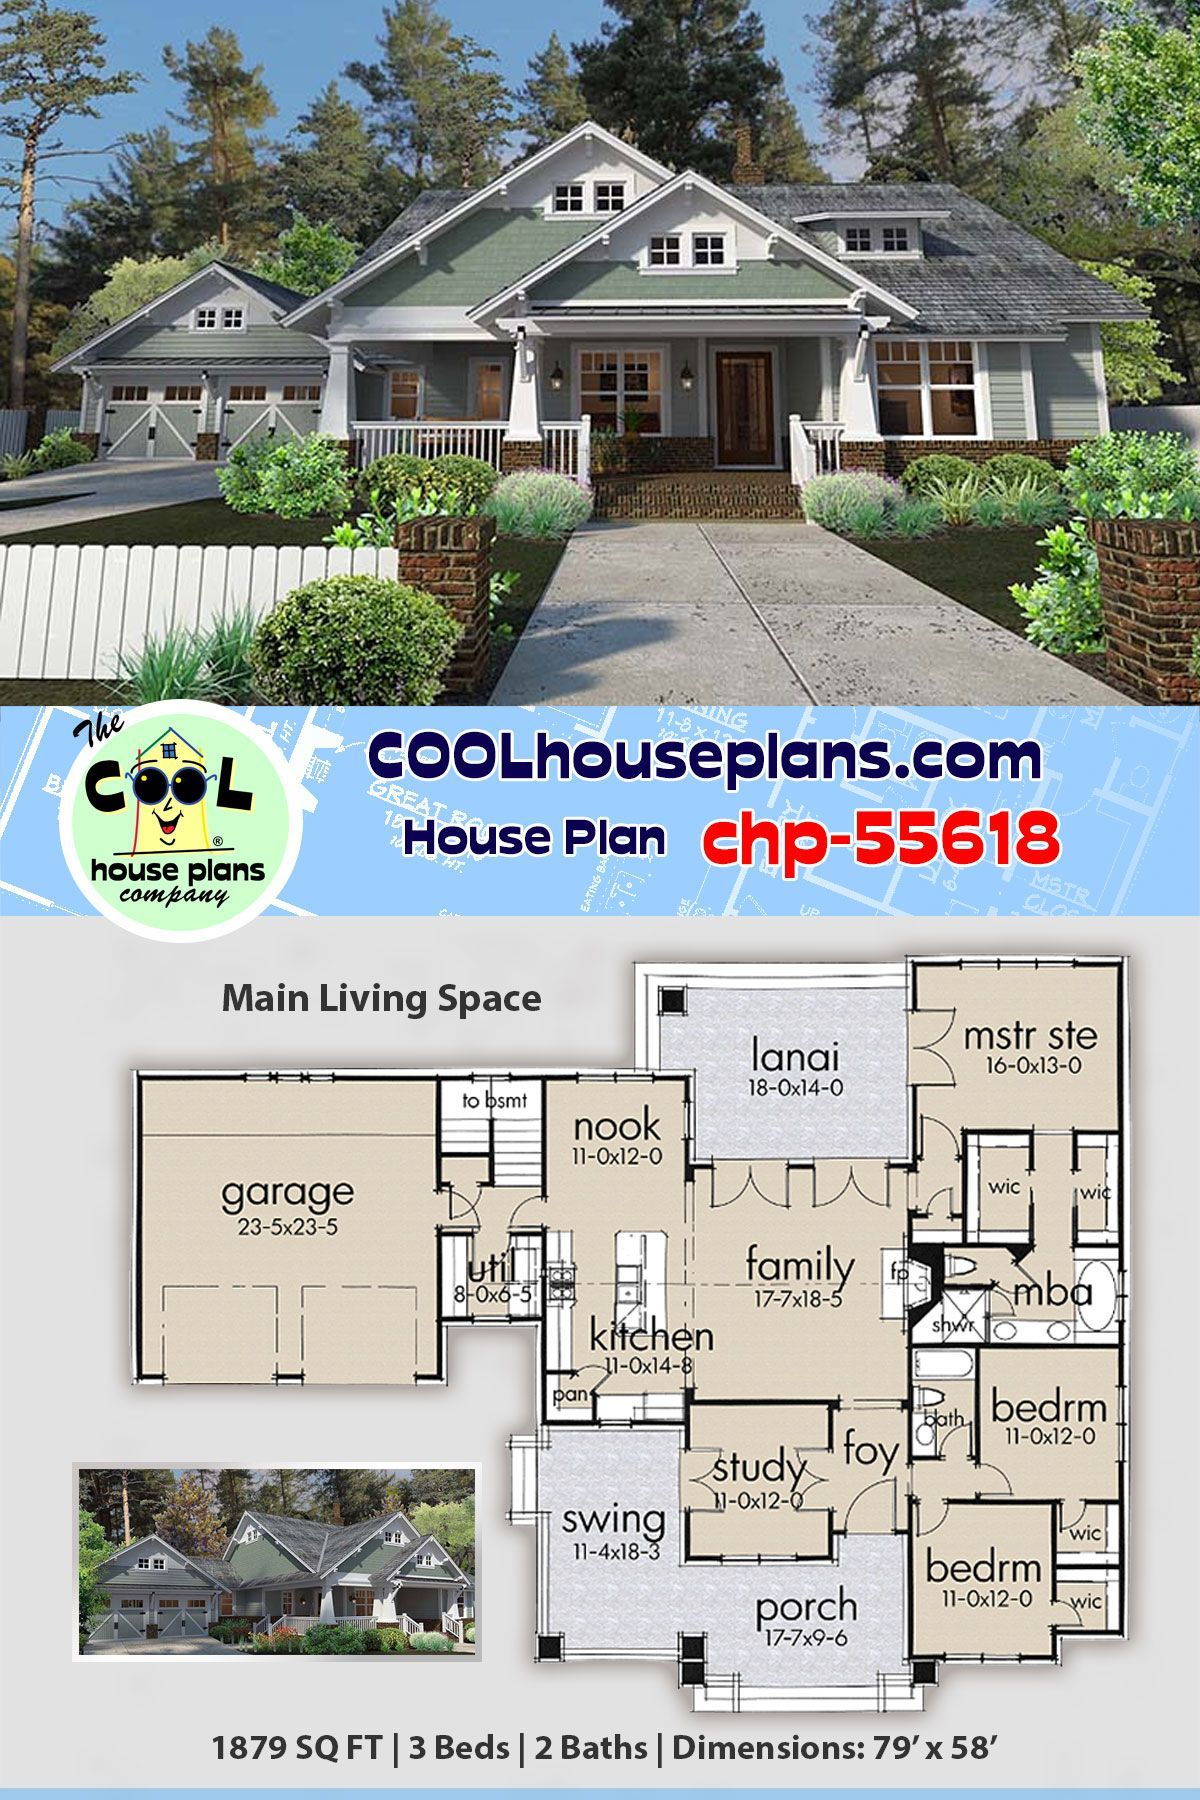 Craftsman Bungalow Home Plan Chp 55618 At Cool House Plans Arts And Crafts S Craftsman Bungalow House Plans Craftsman Floor Plans Craftsman Style House Plans